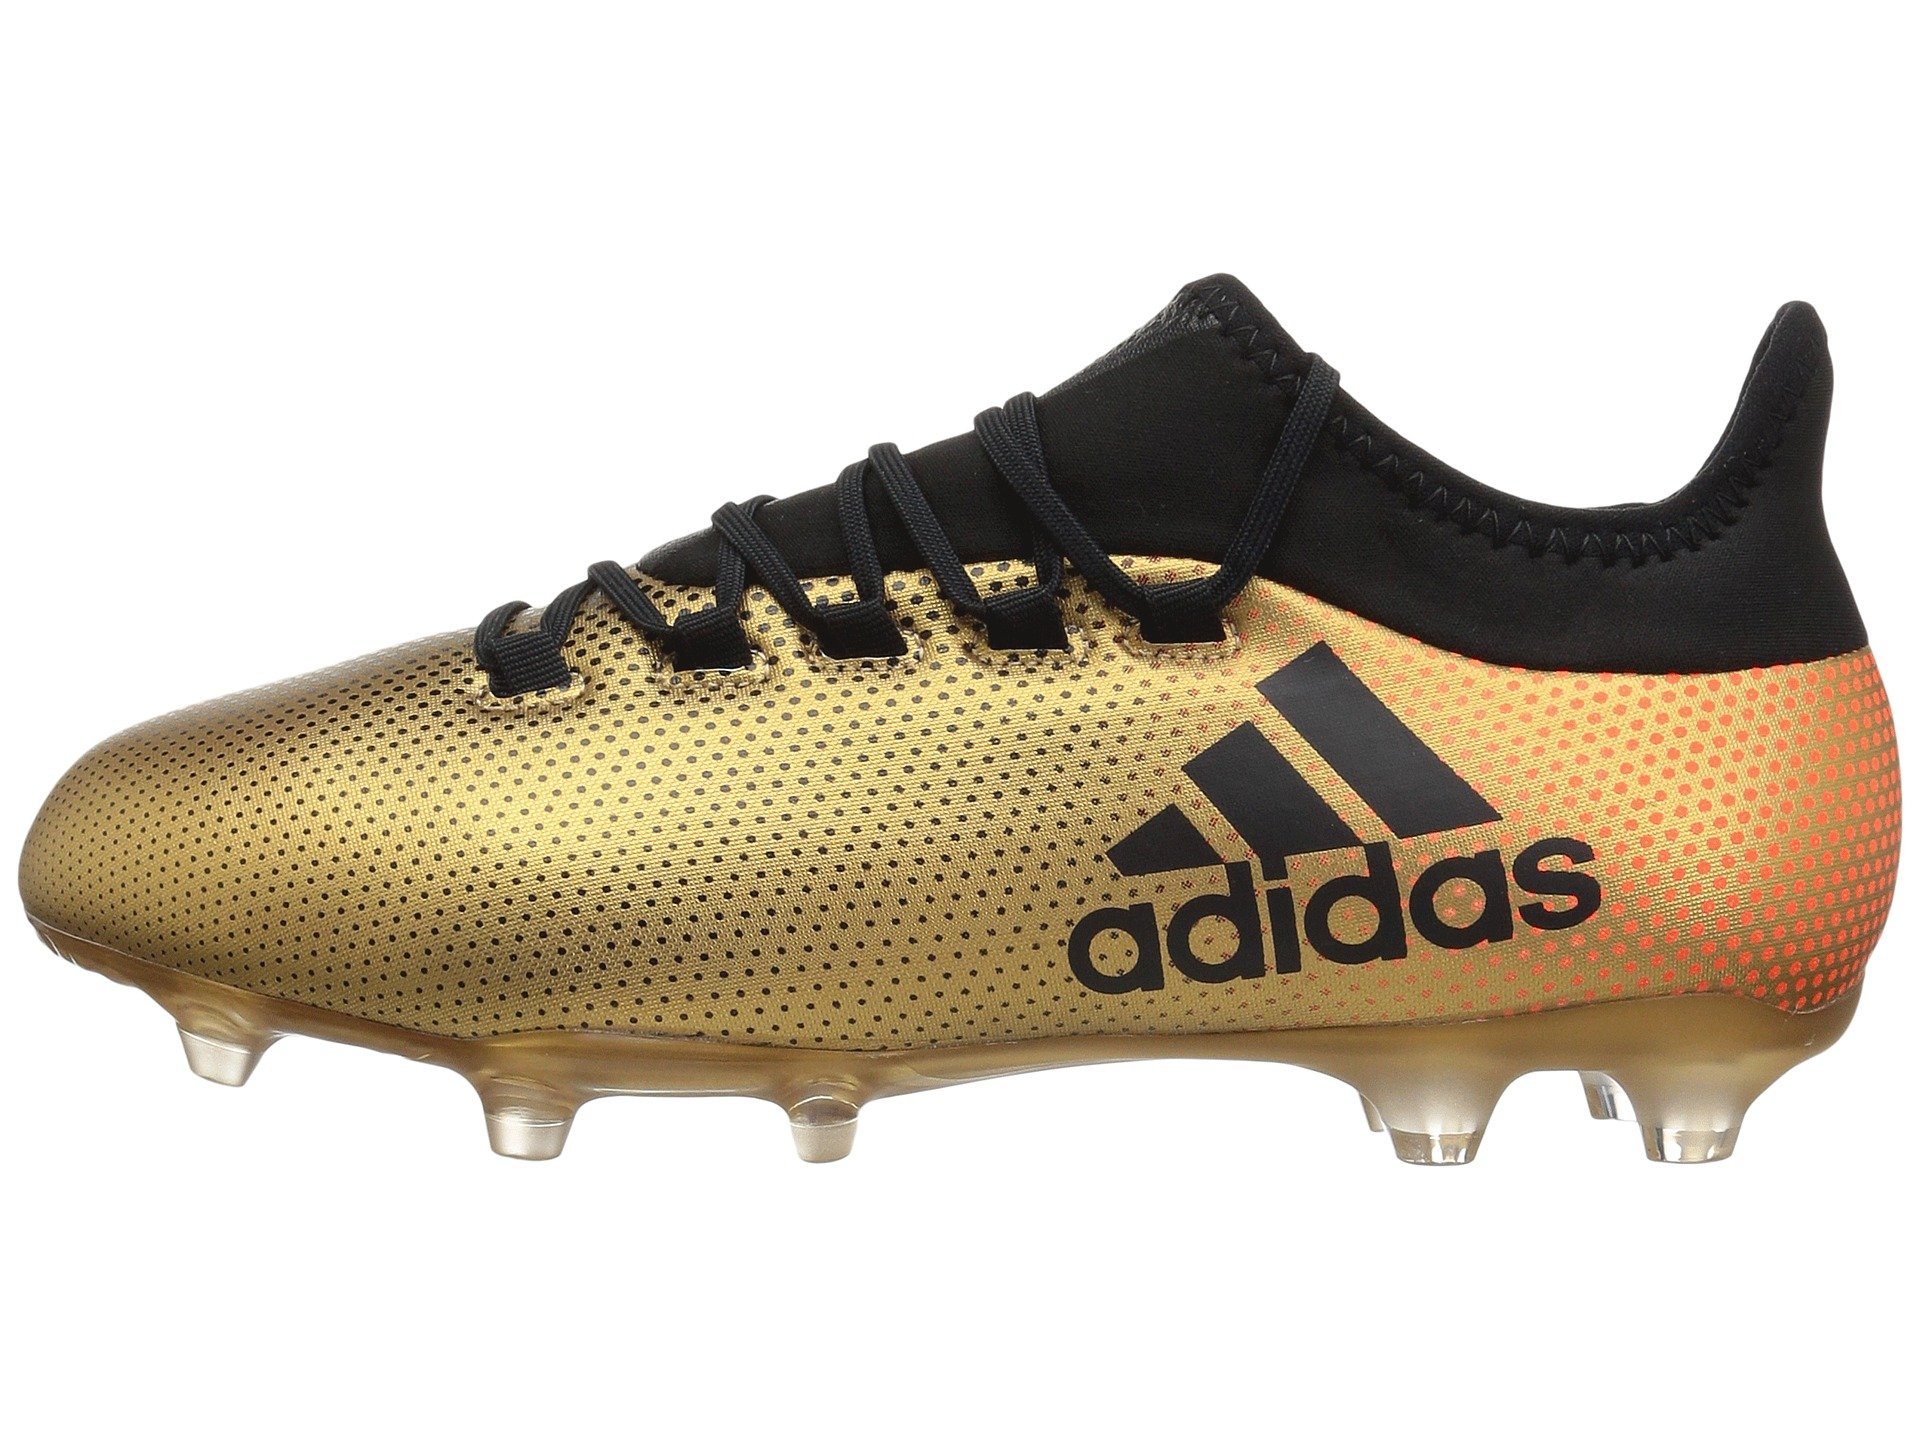 X Red black 2 Tactile Fg Adidas 17 solar Gold 8q6gdAAwx